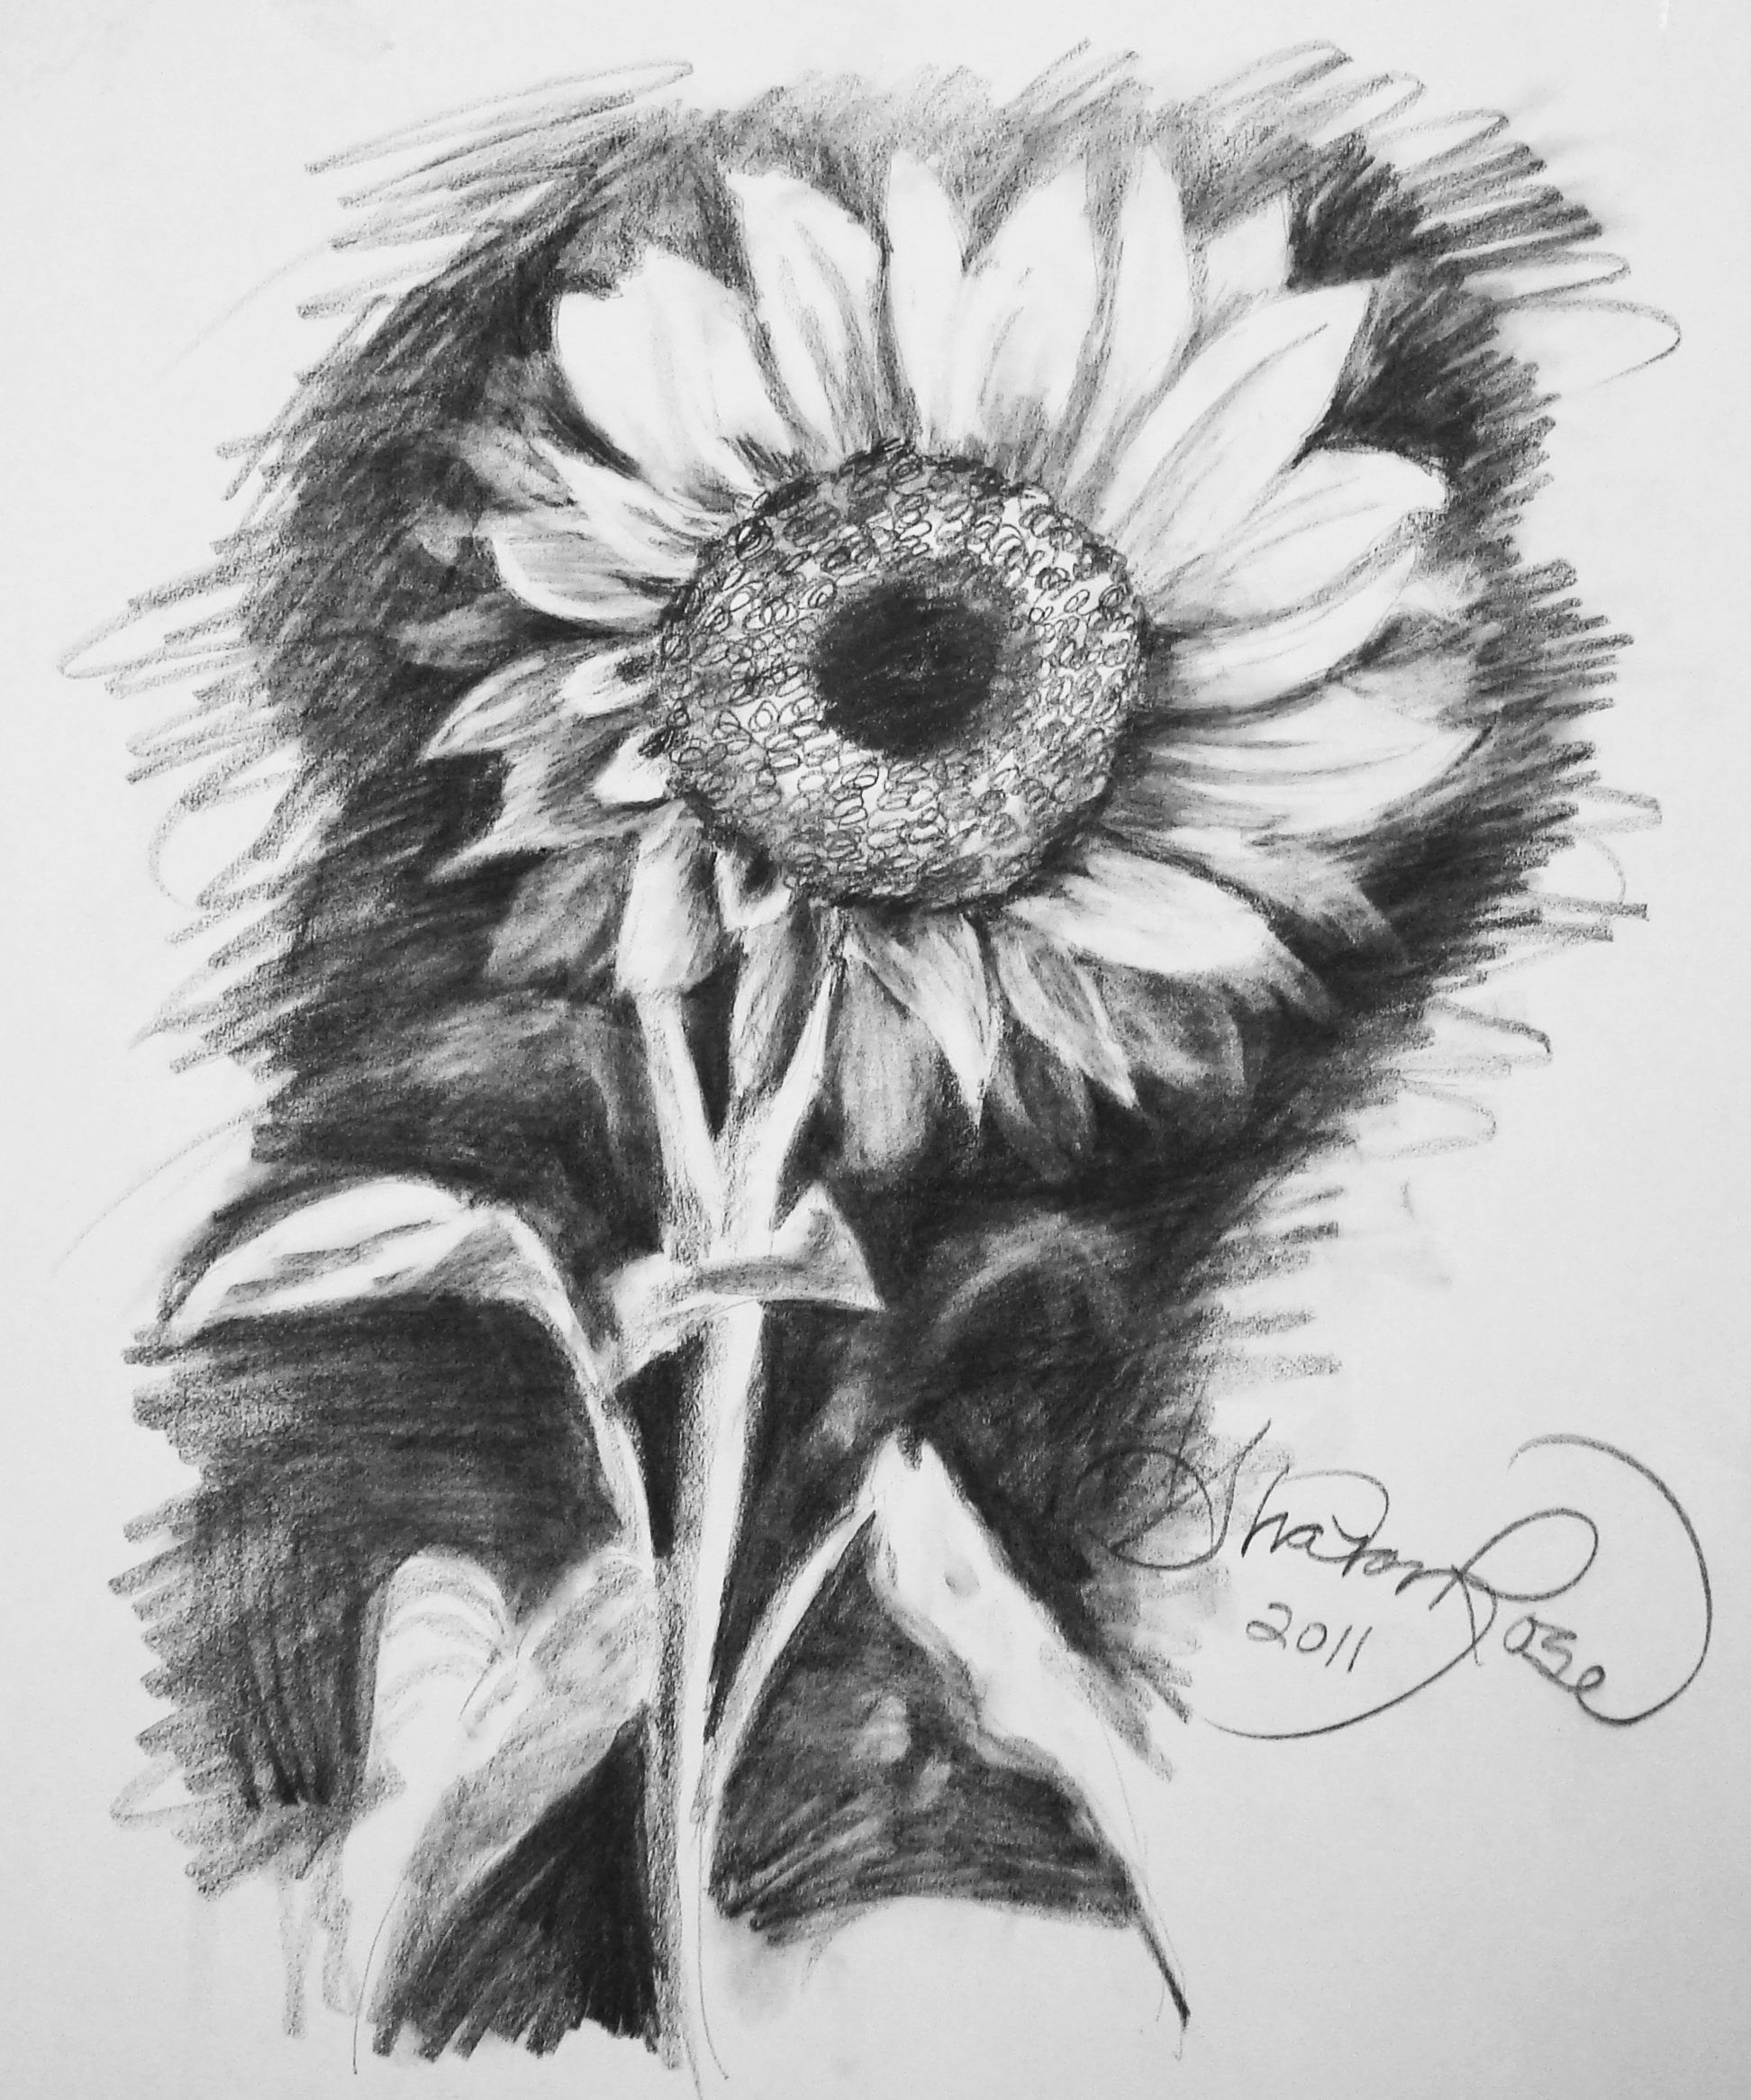 sunflower sketch pencil sketch sunflower sketches drawings pencil sketch sunflower sketch